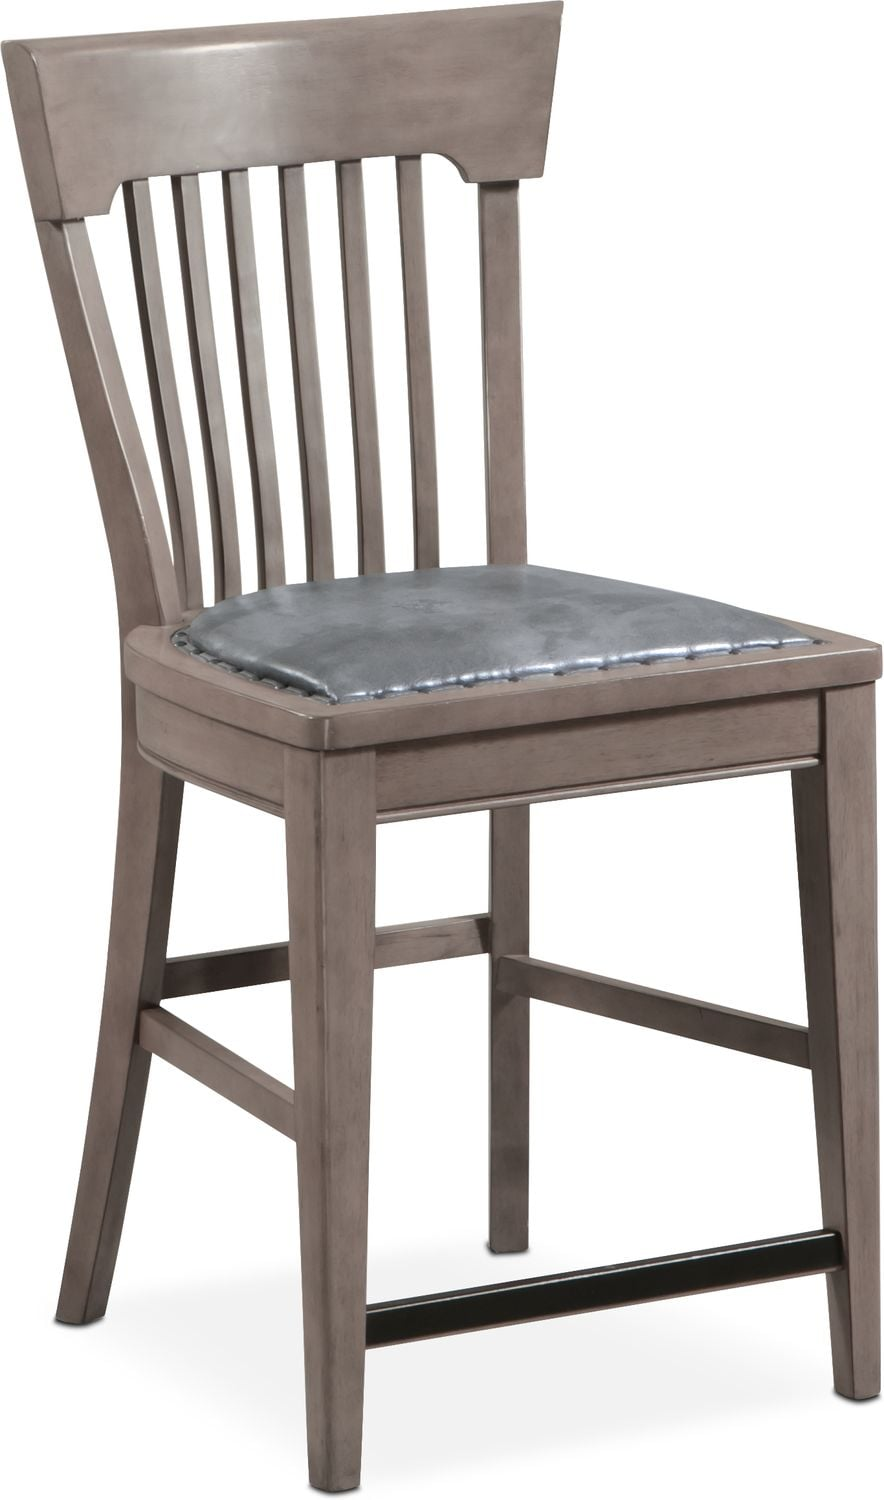 Dining Room Furniture - Tech Counter-Height Slat-Back Stool - Gray